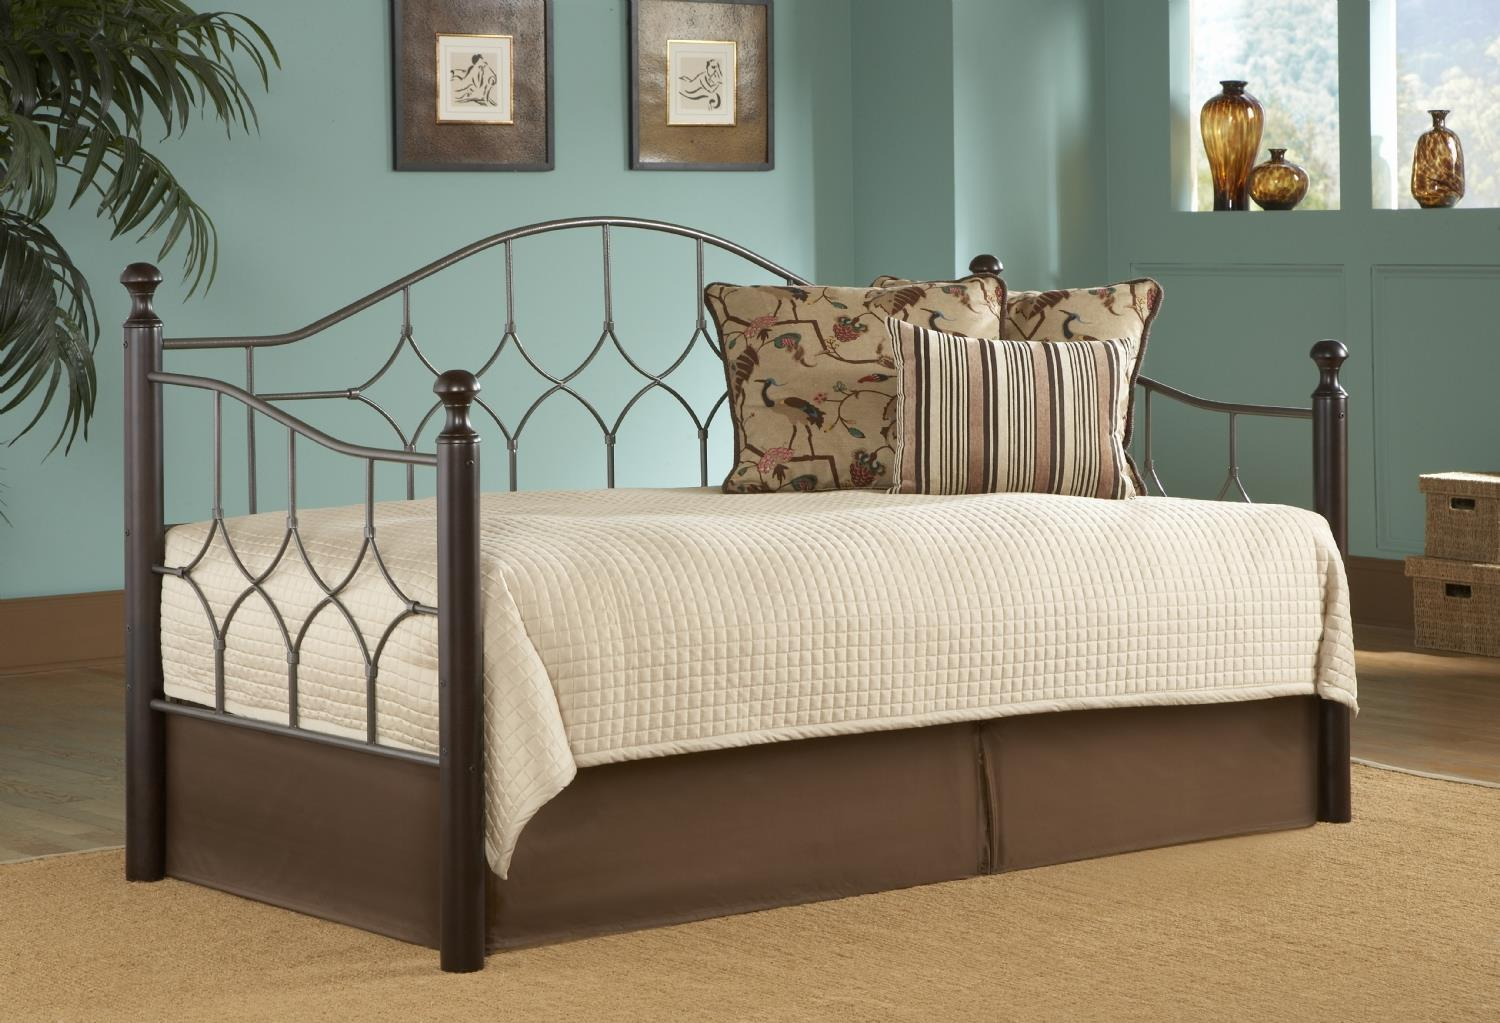 Fashion Bed Group Bianca Daybed - Item Number: D98113015